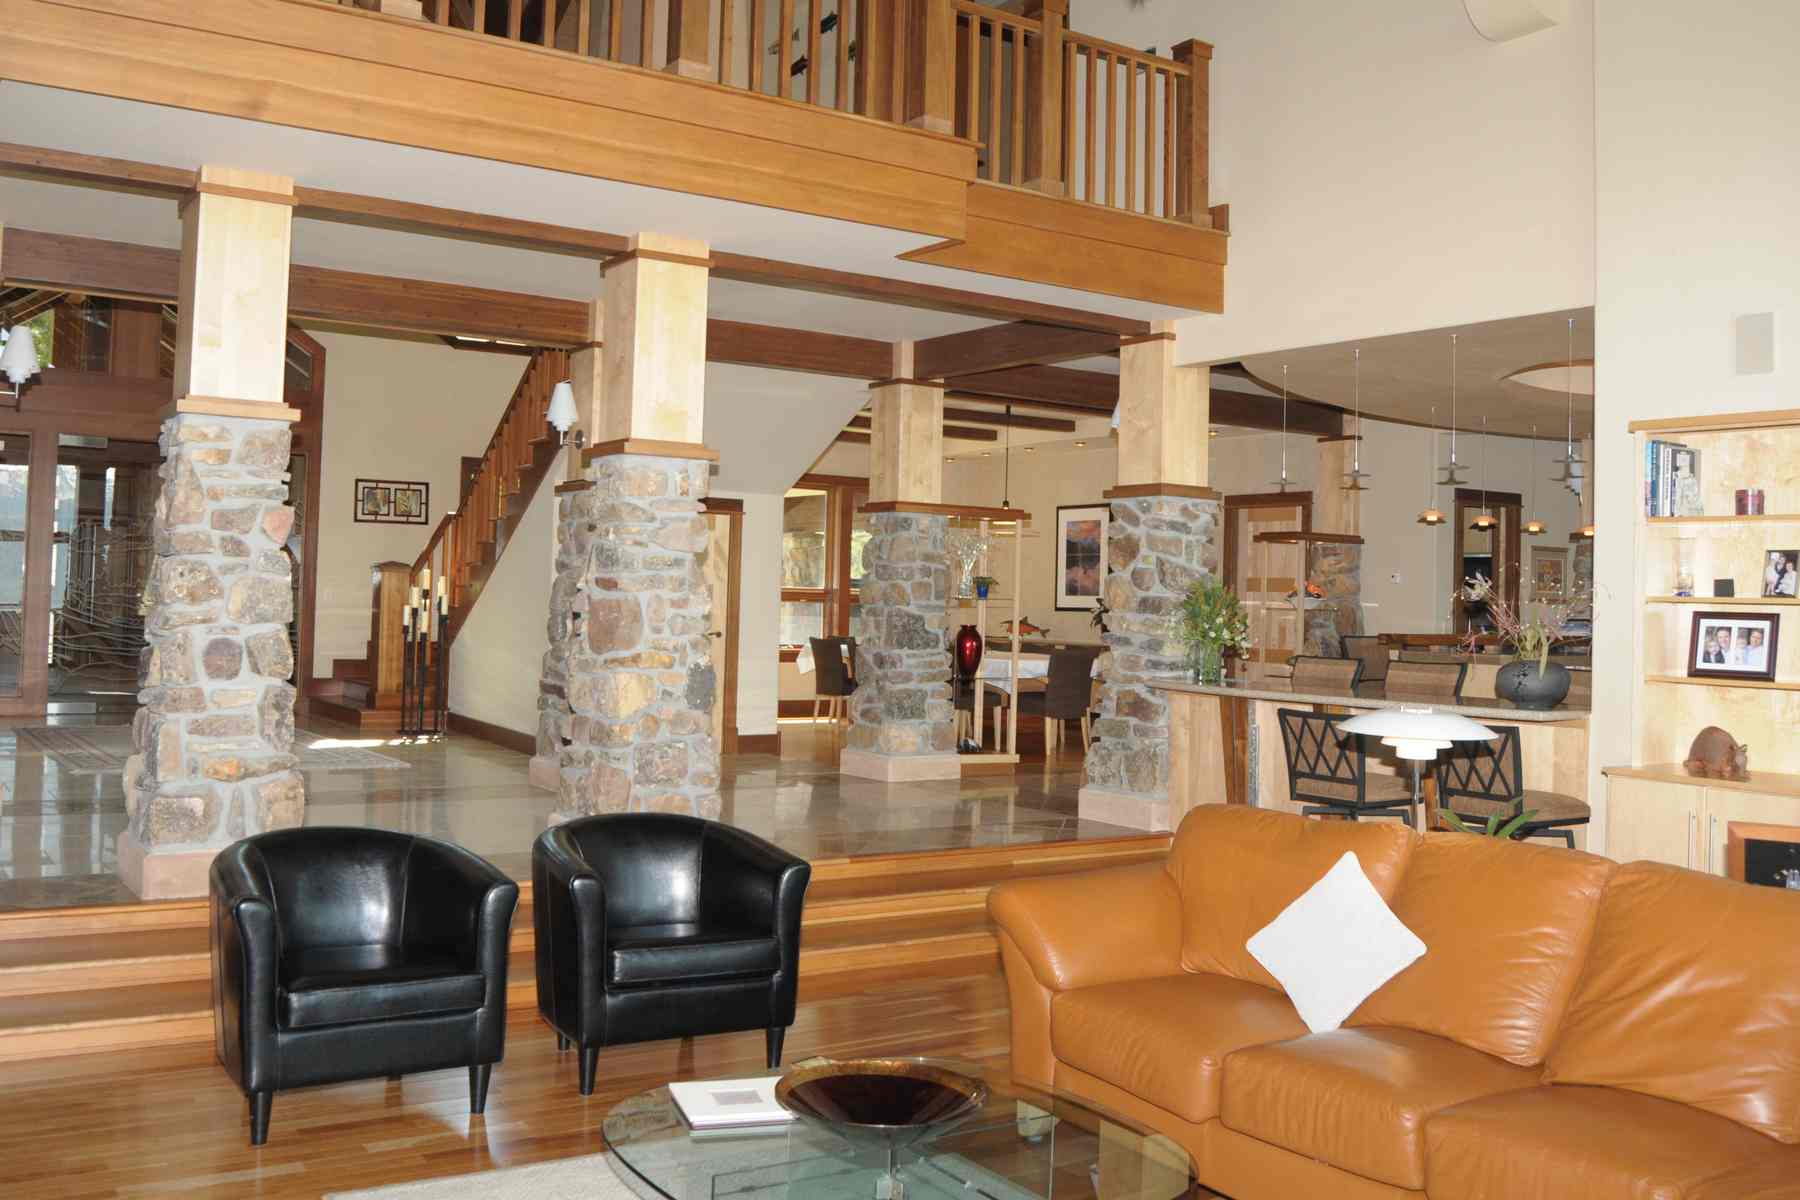 Additional photo for property listing at Elegant Sawtooth Home 300 Decker View Ln 斯坦利, 爱达荷州 83278 美国